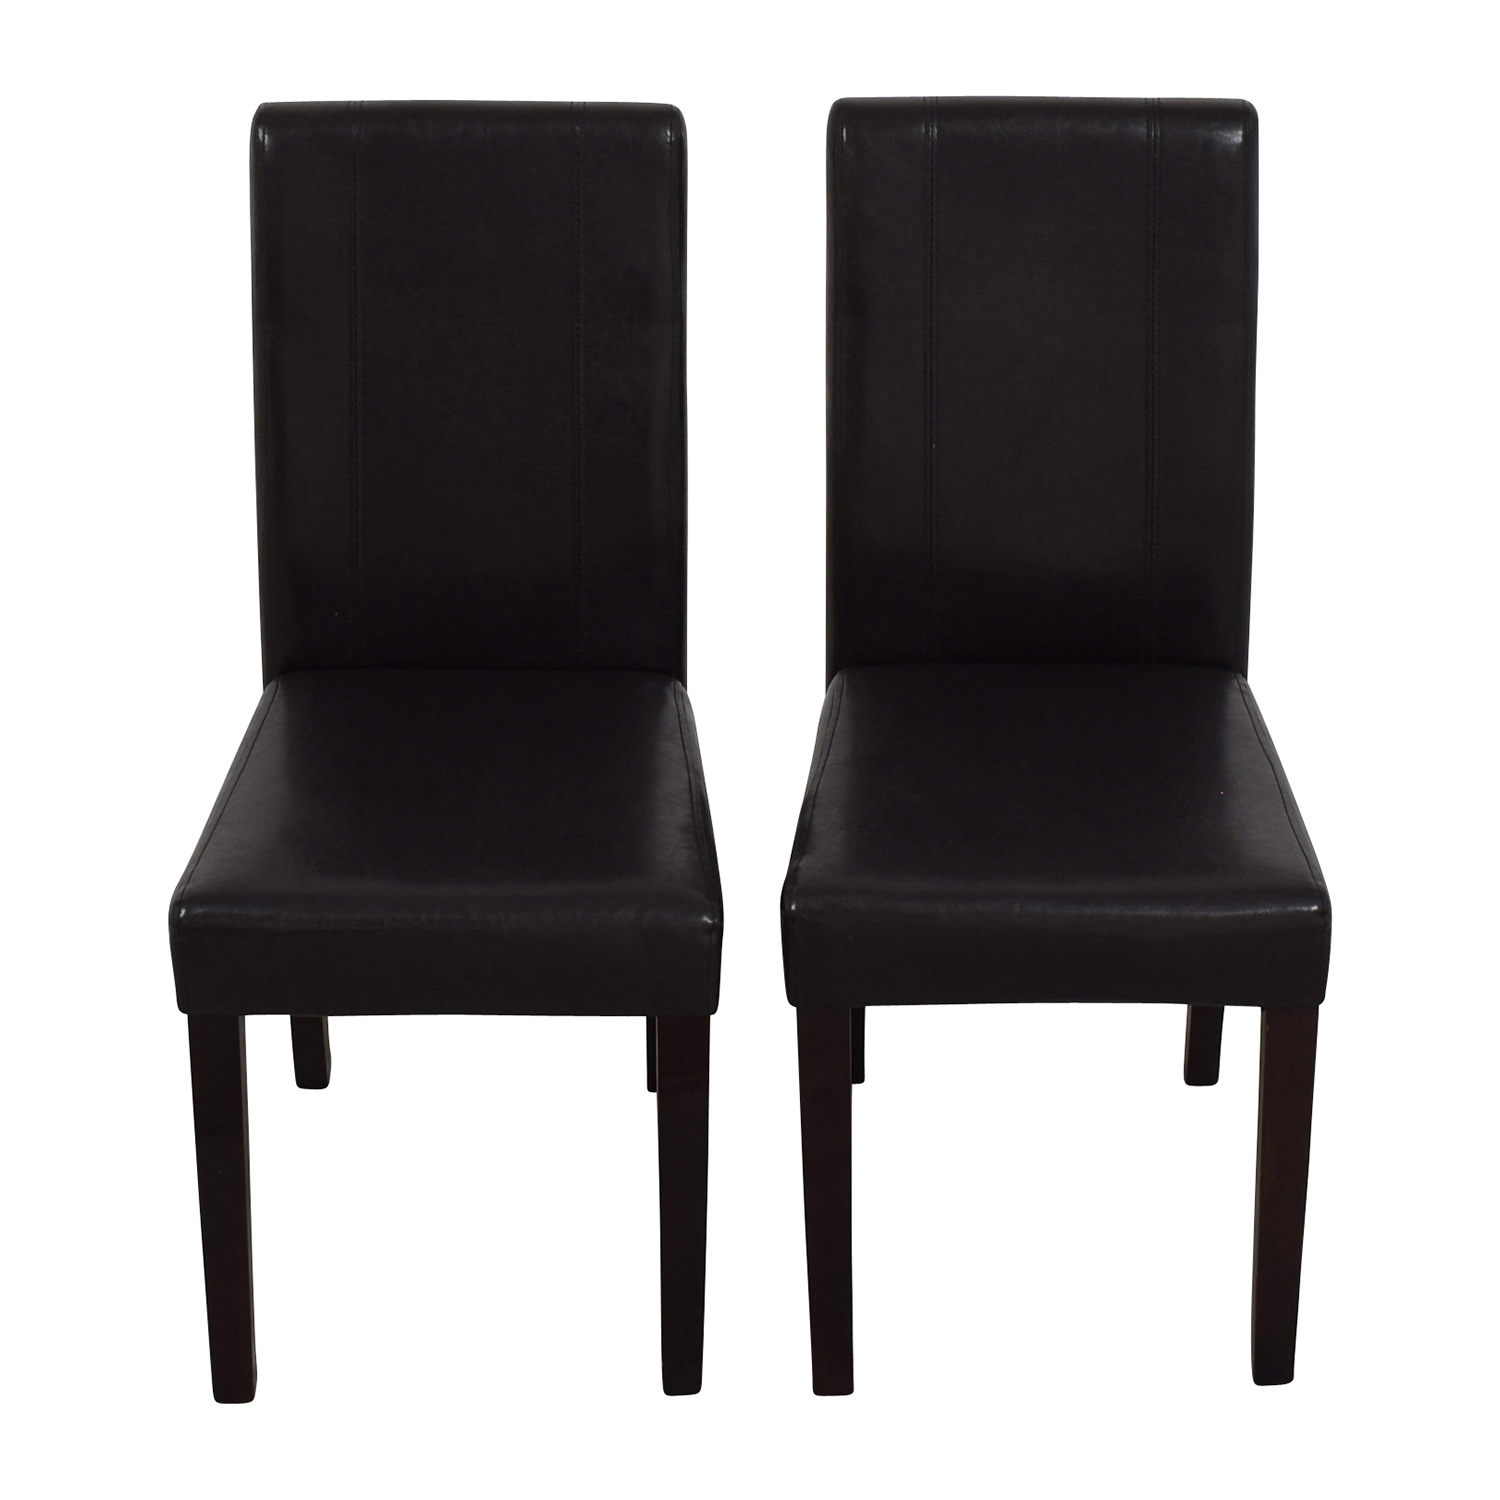 buy Roundhill Roundhill Solid Wood Leatherette Padded Parson Chairs online